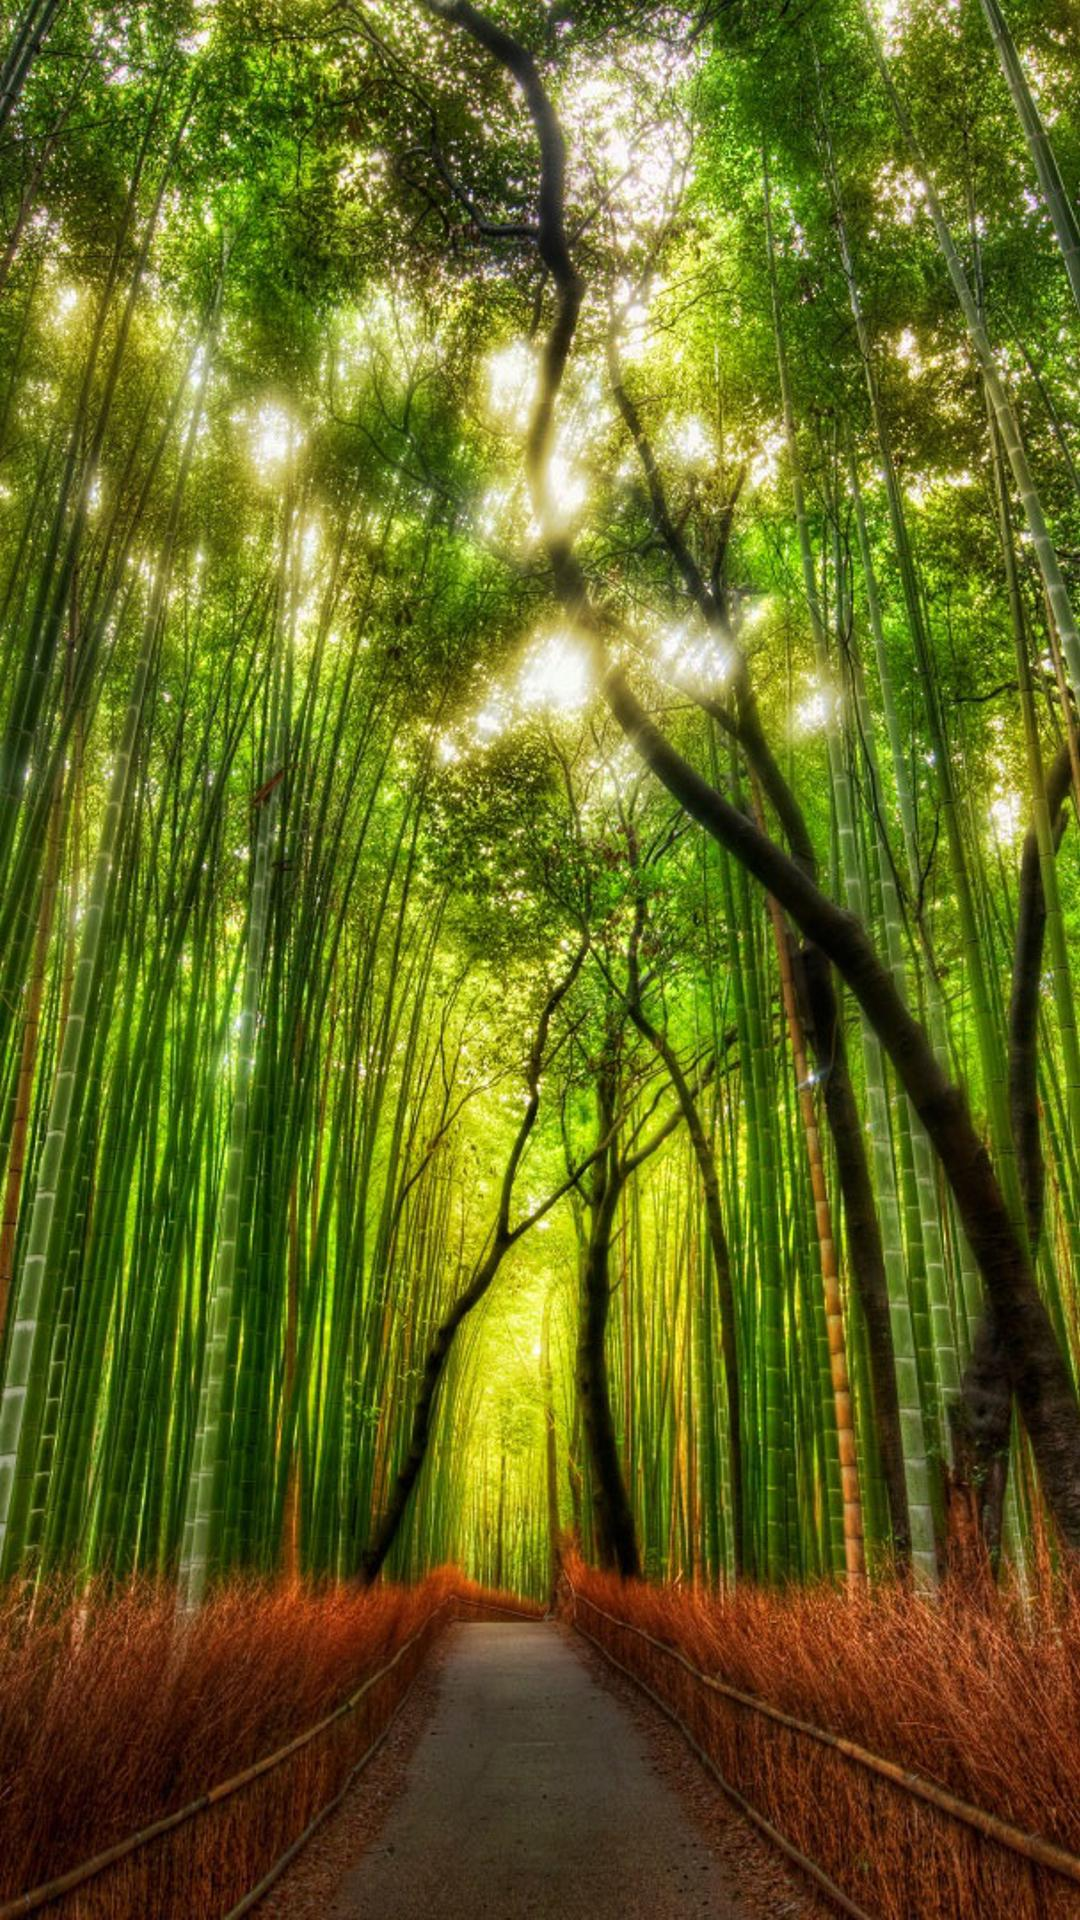 green and red bamboo forest in the sunlight wallpaper download 1080x1920